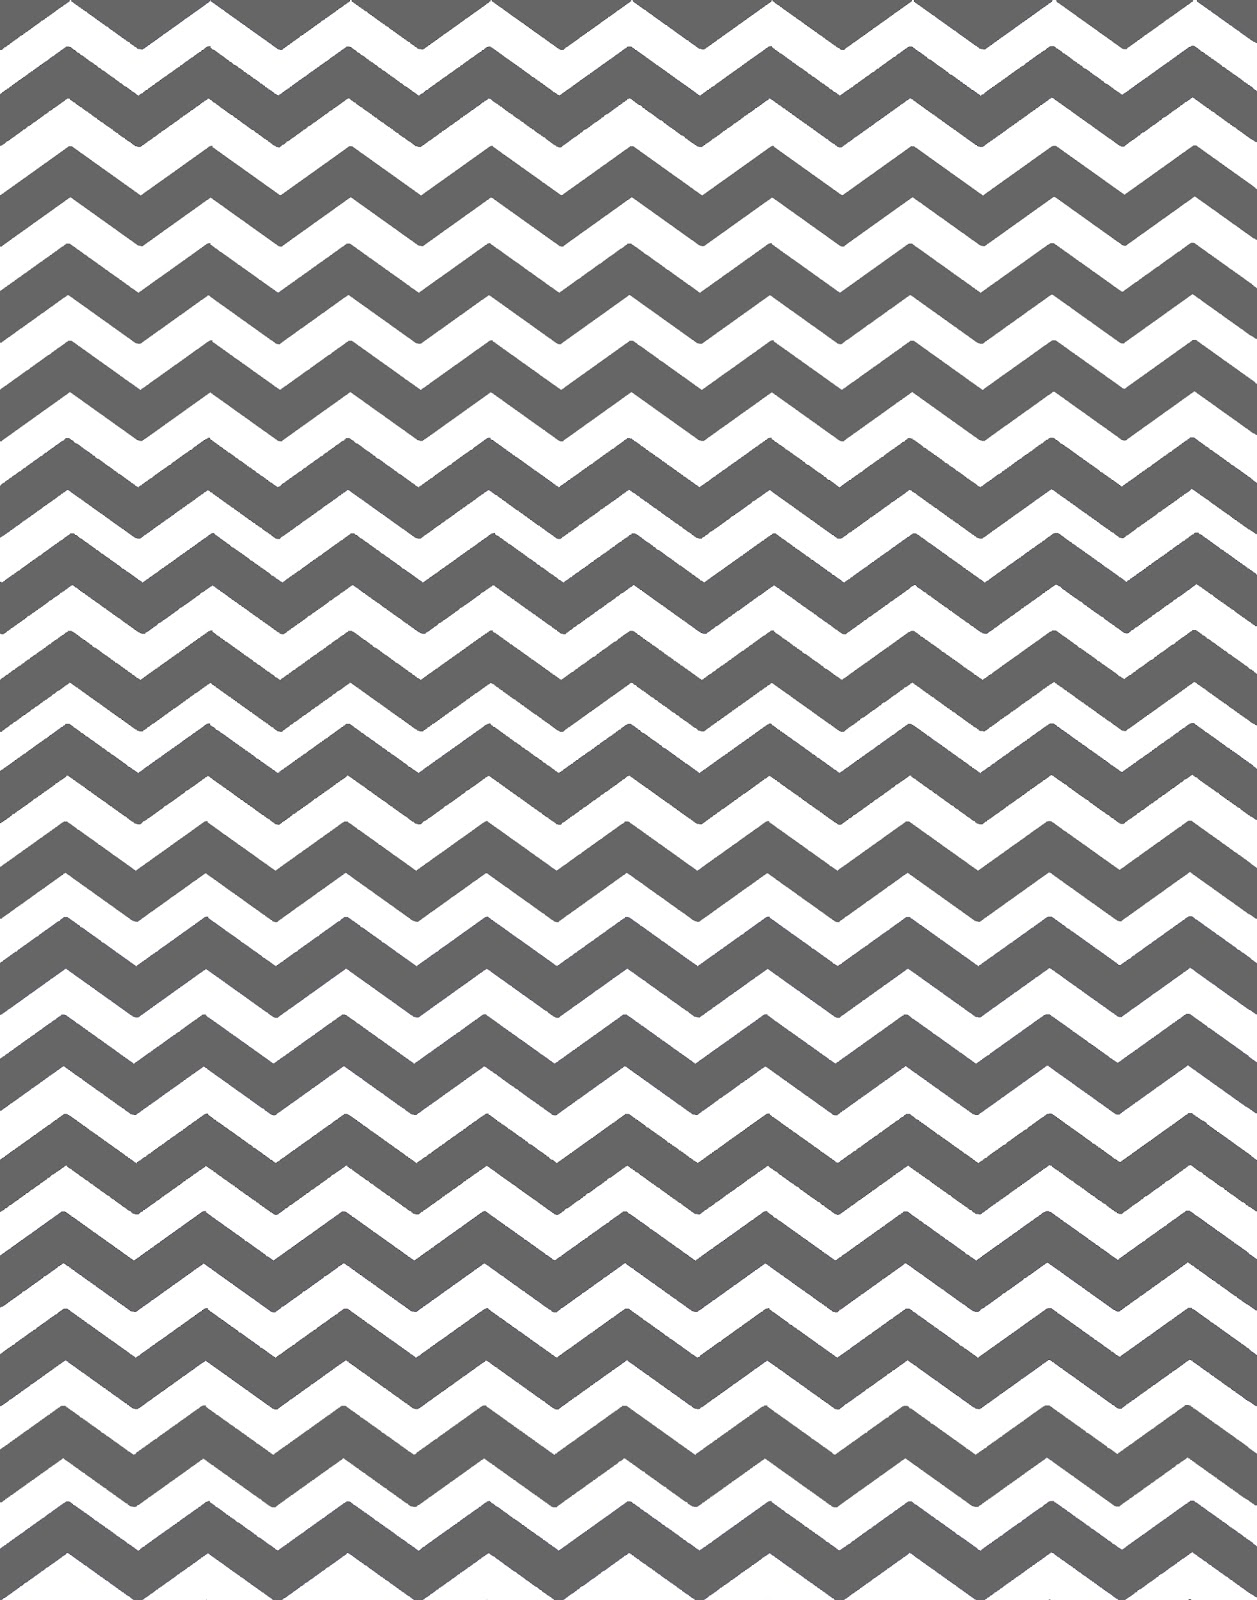 Chevron Pattern Clipart.